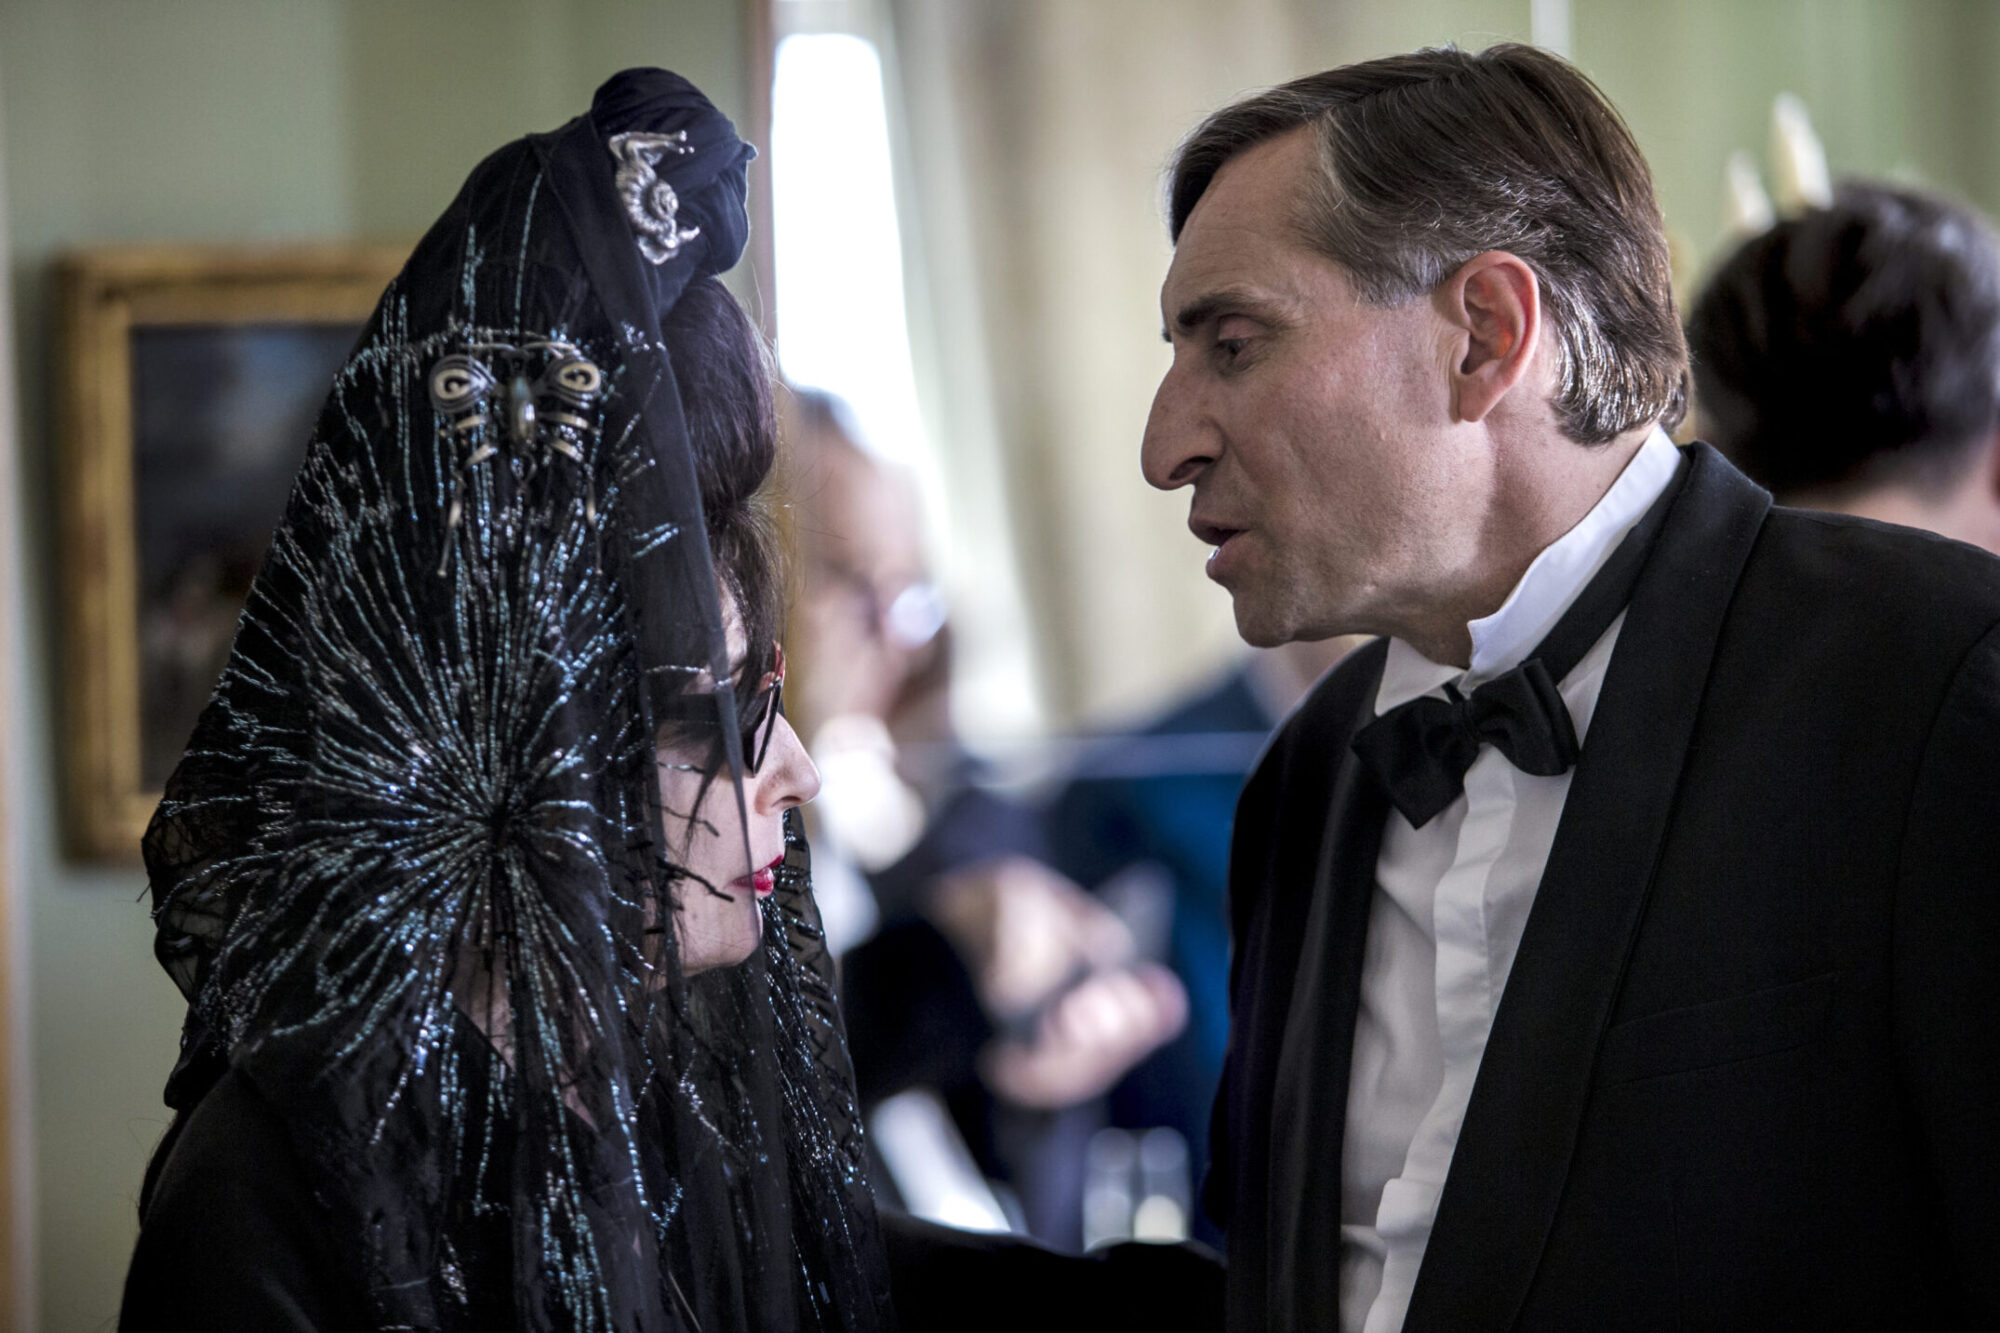 Diane Pernet, Baron Marc Osmont d'Amilly about Misia and Coco Chanel